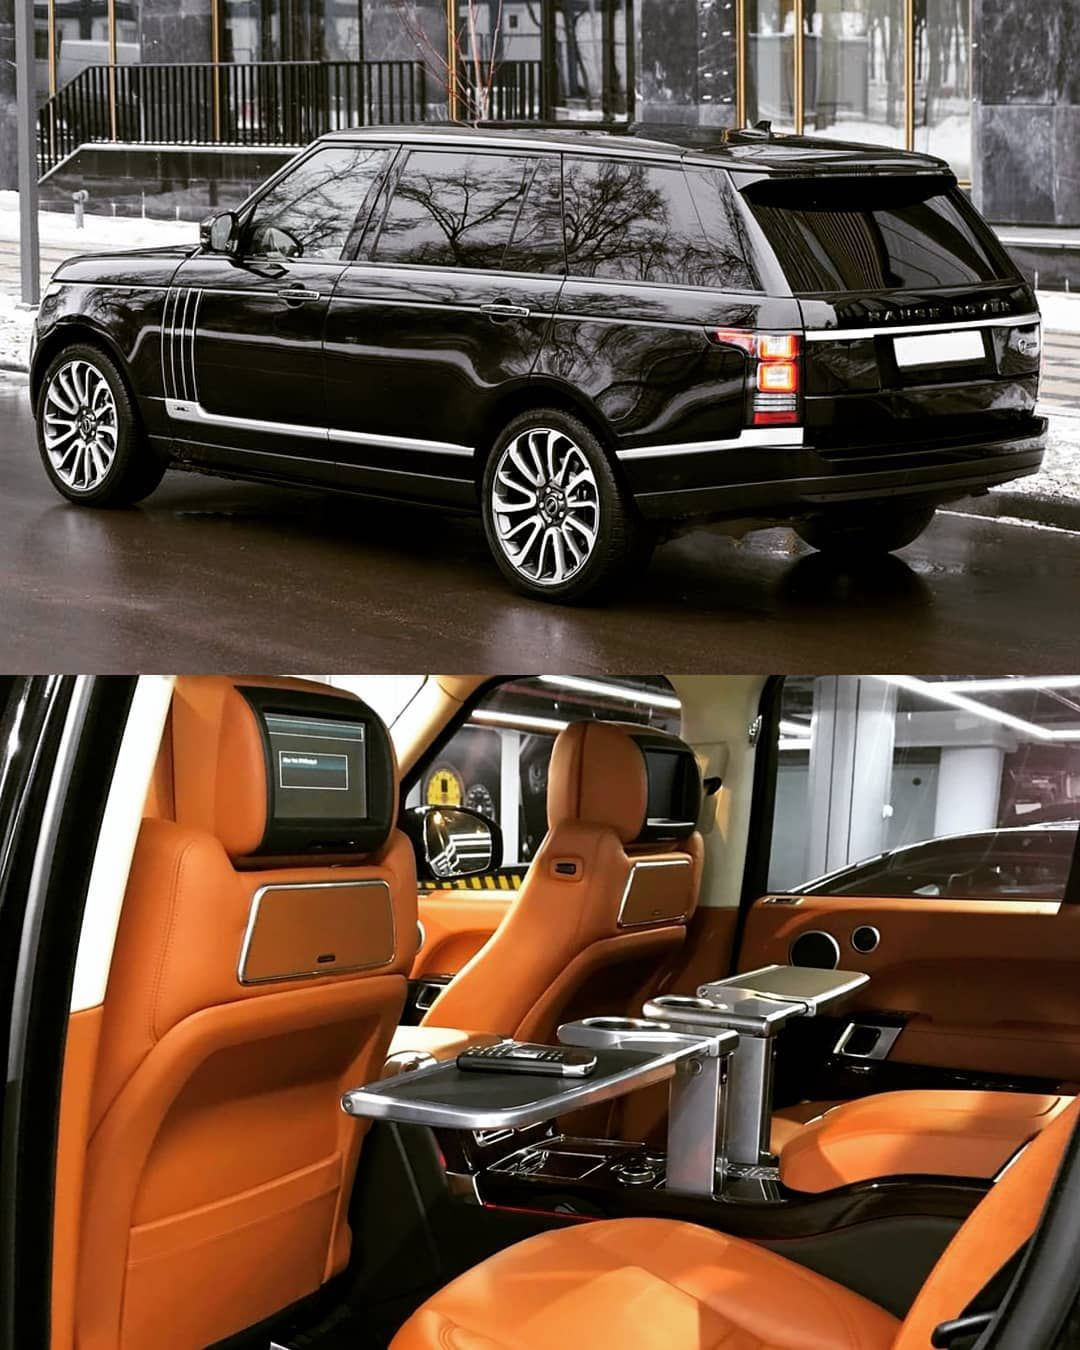 "Photo of 👑 LUXURY IS A LIFESTYLE 👑 on Instagram: ""Rear seat luxury treatment 🥂🍾😍😍 Range Rover Vogue SVautobiography 🔥🔥🔥👑👑✌ 👉 @autotrade_moscow 👈 👉 @ssmotors 👈  #highbosslife #mercedesbenz…"""